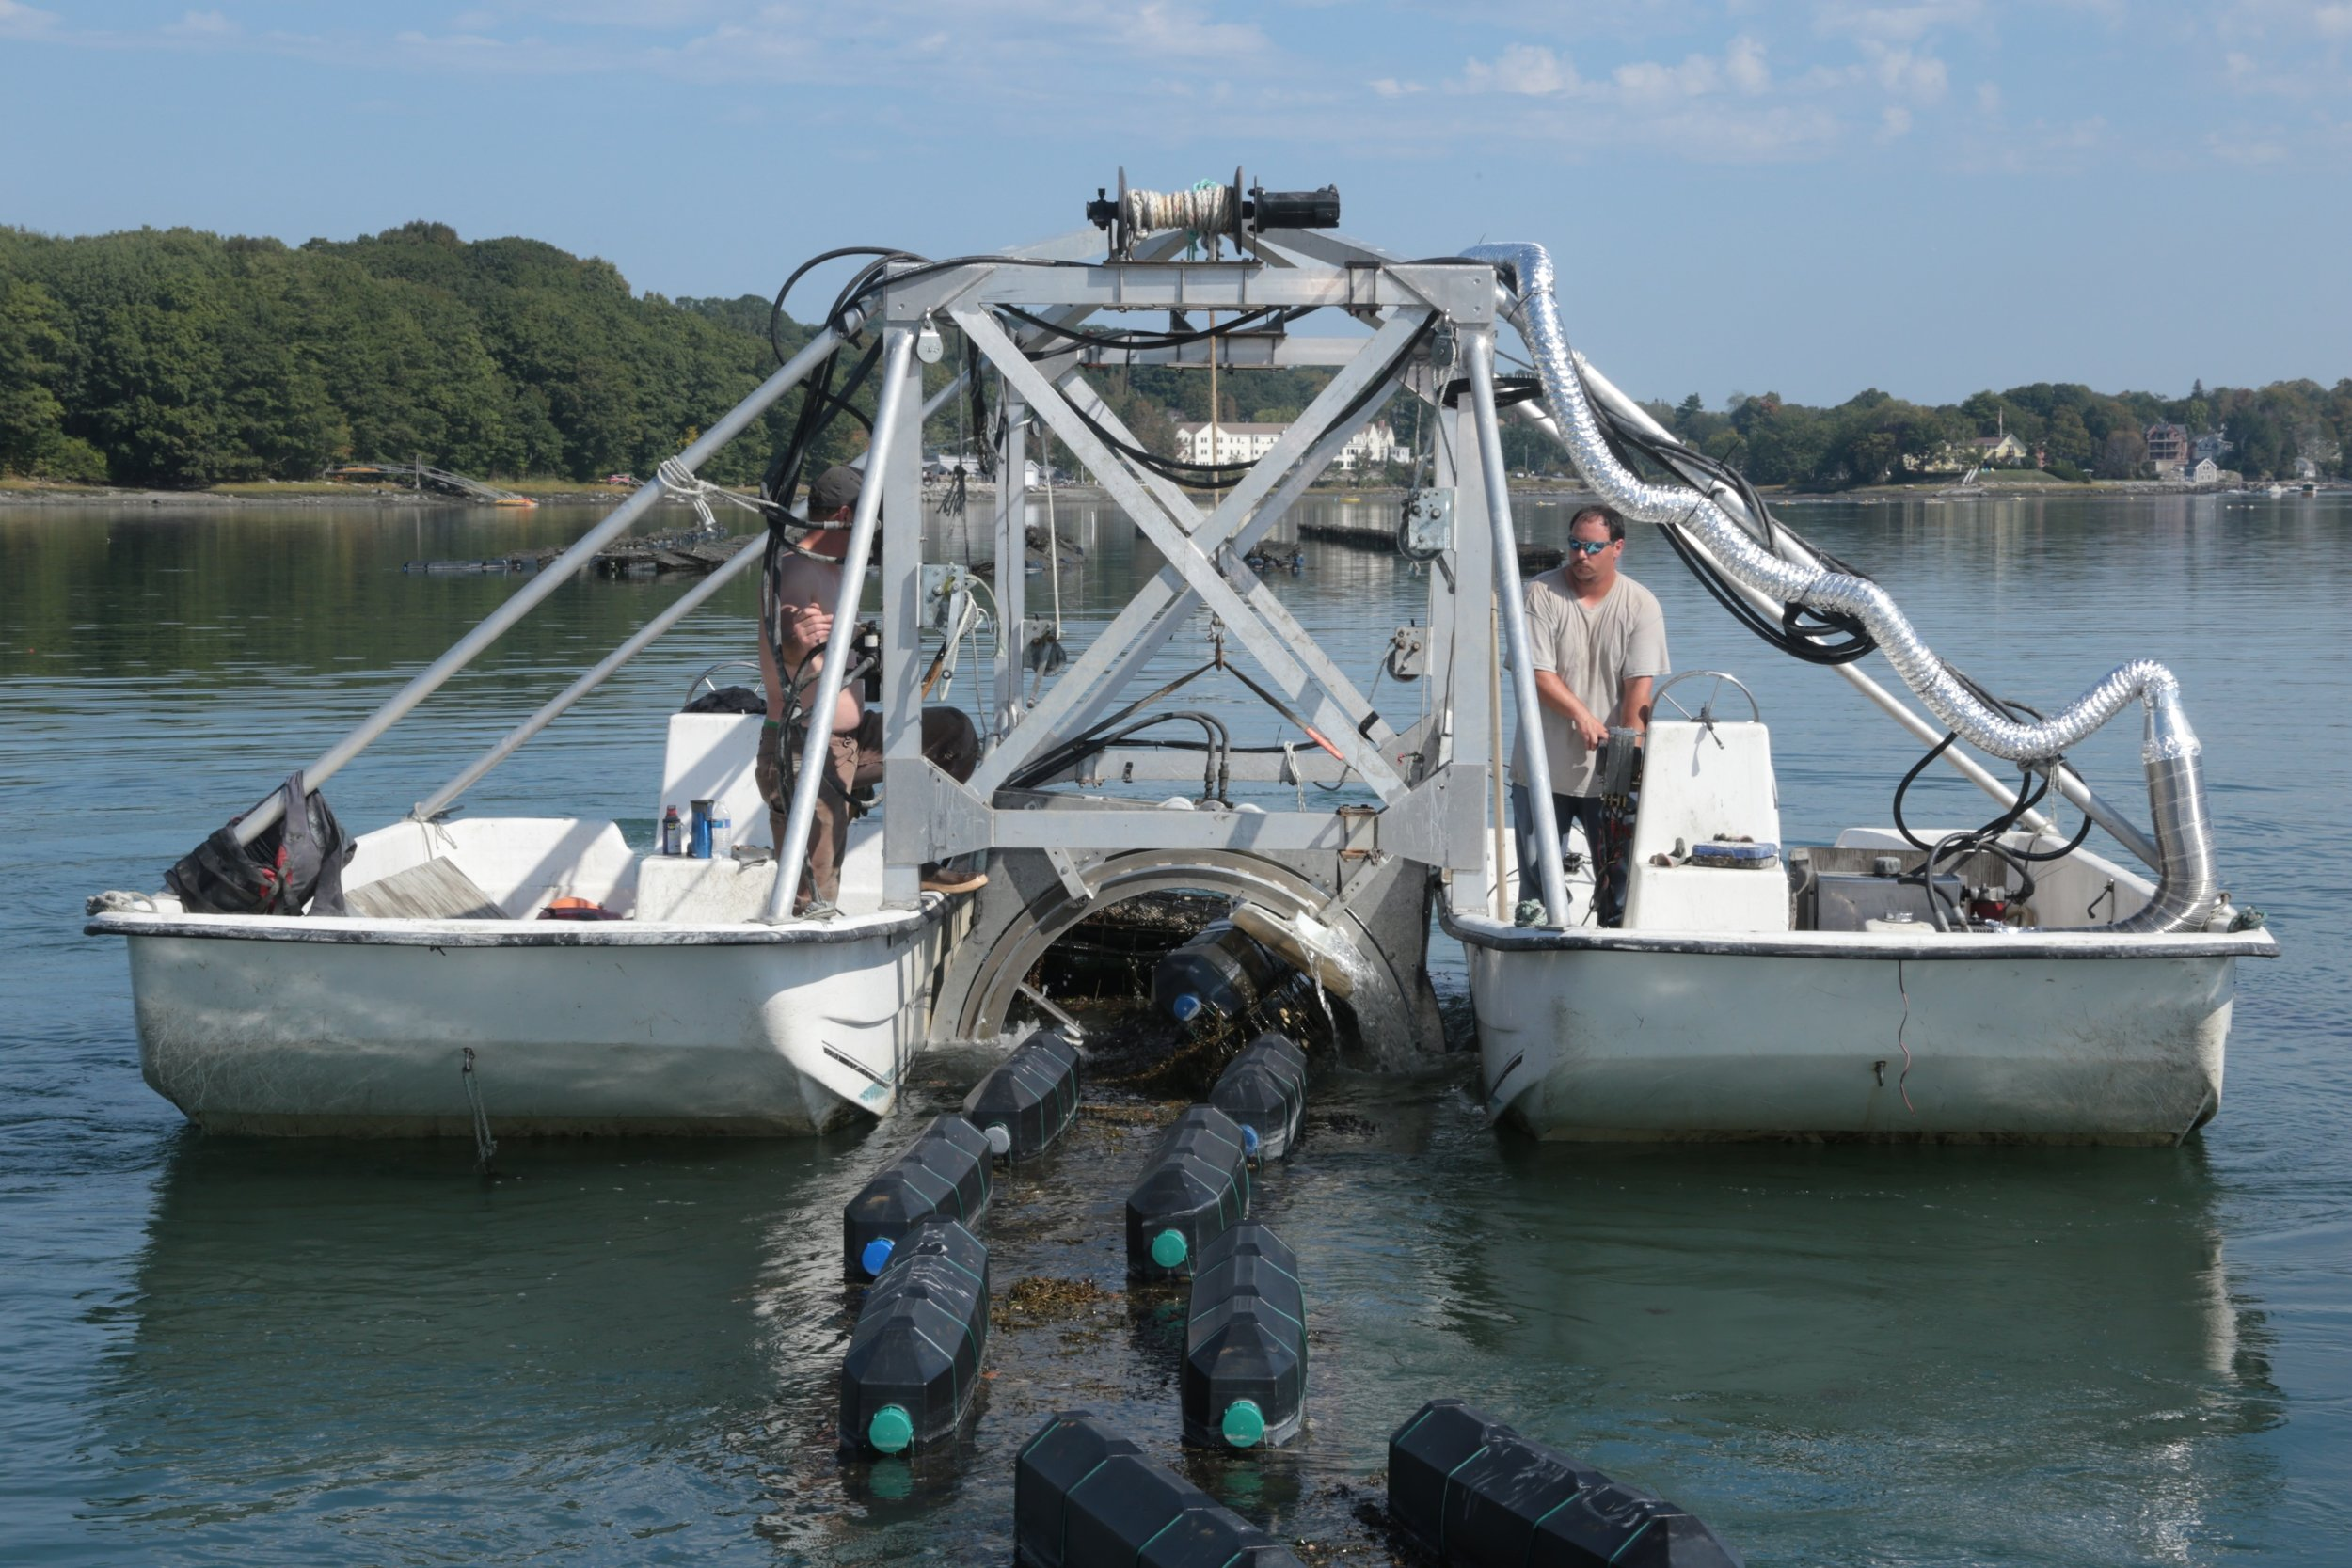 A great day of oyster farming is when…. - The eagles fly, the sturgeon jump, and no equipment breaks!